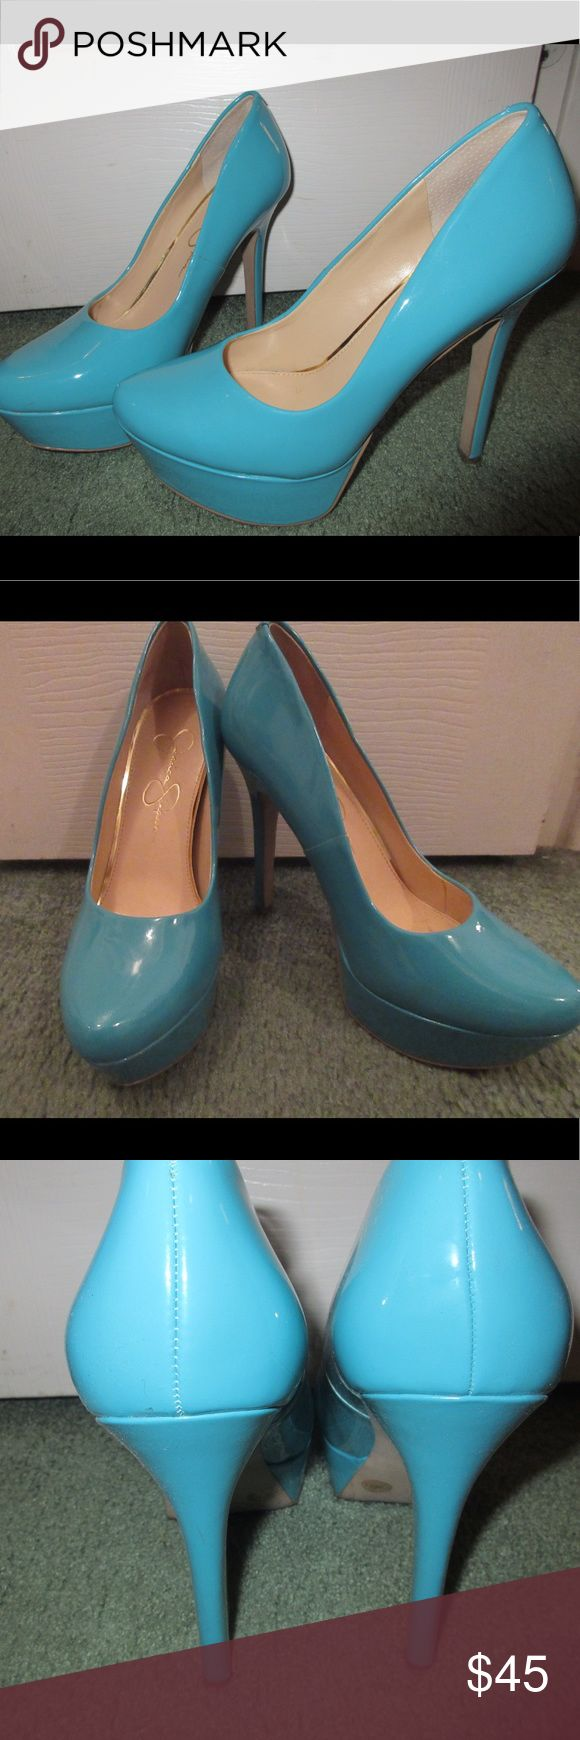 Jessica Simpson pumps!! Perfect condition. Great for spring or summer. Love how bright these are!! Jessica Simpson Shoes Heels